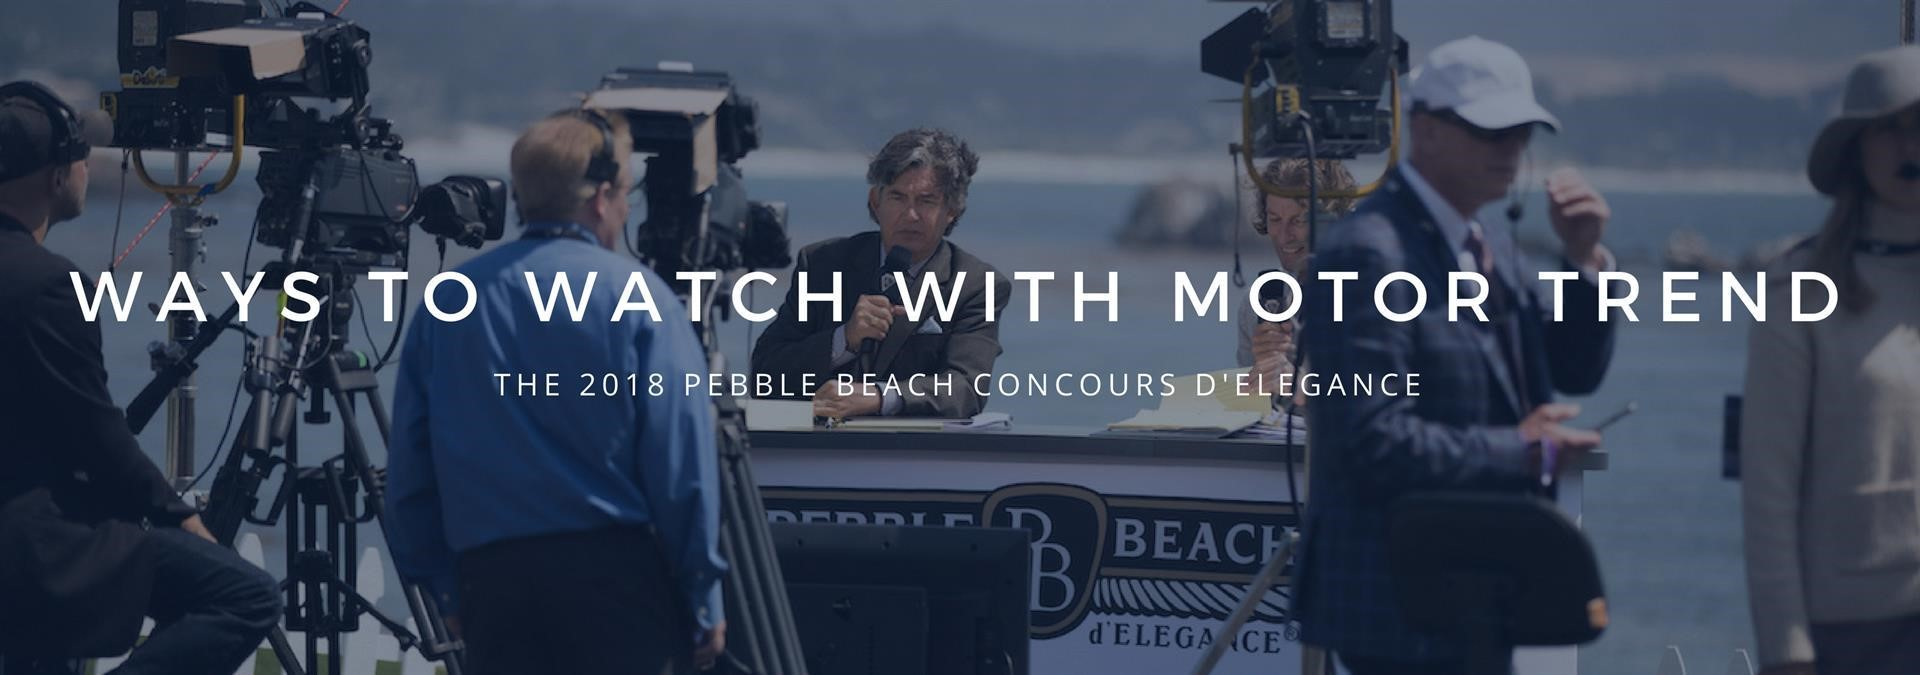 ways to watch pebble beach